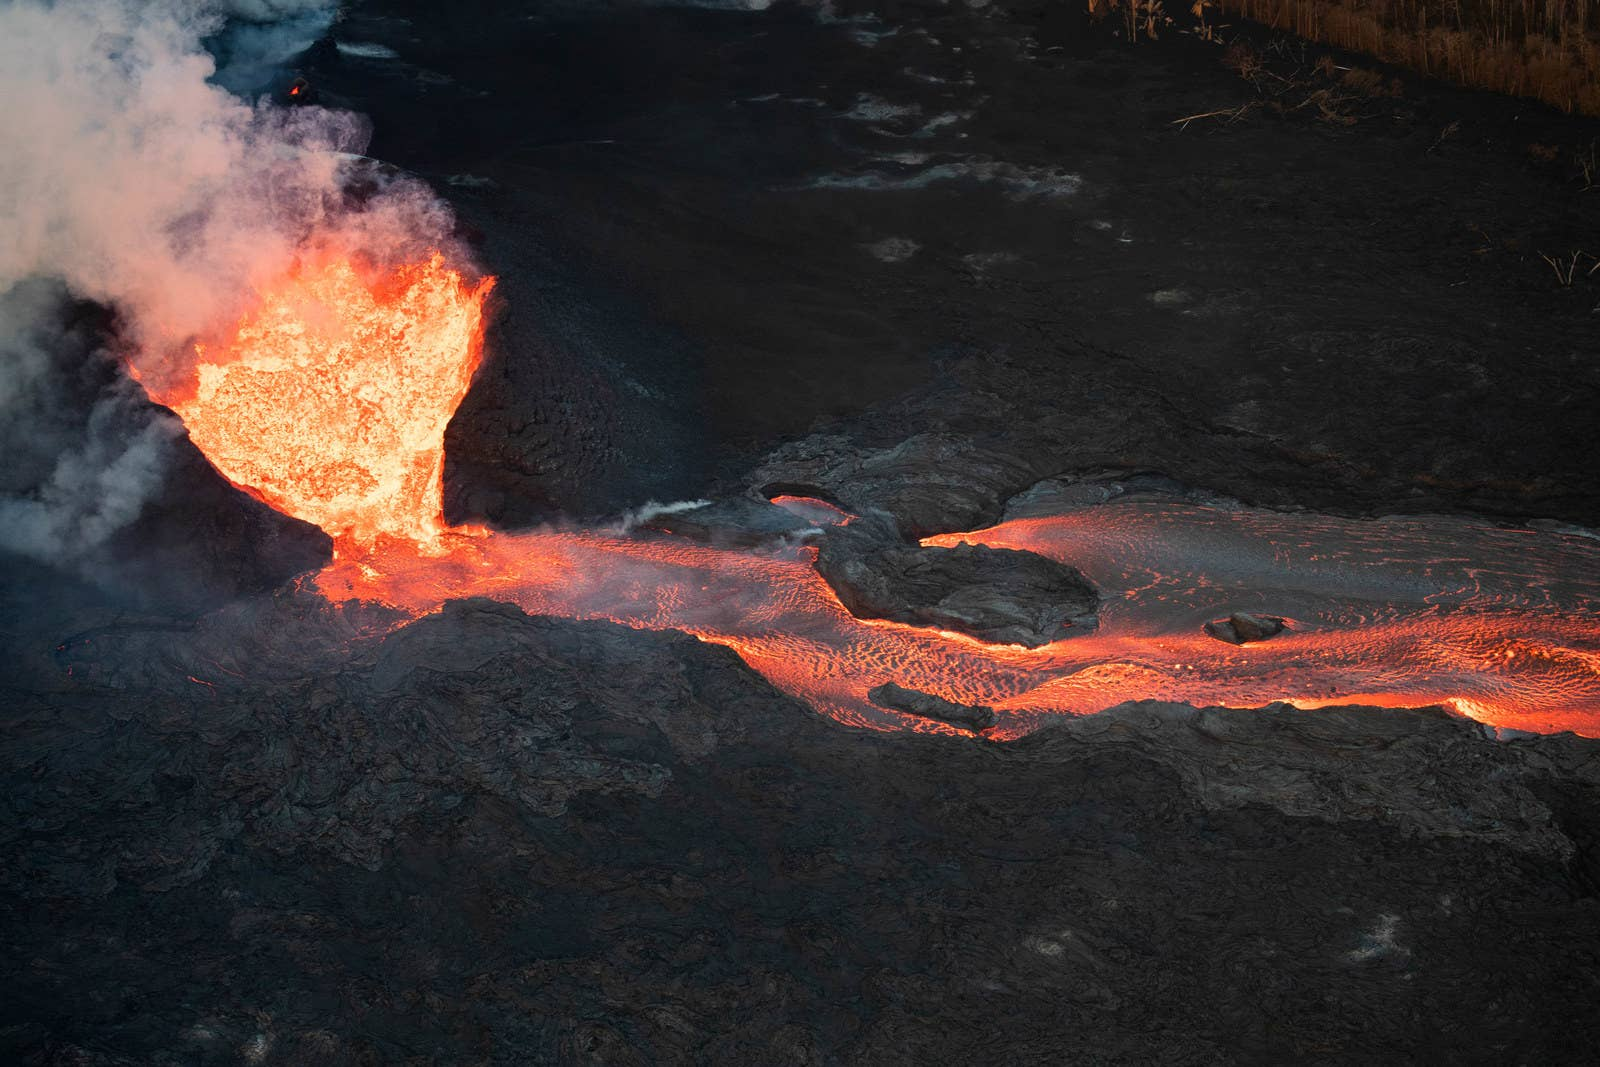 Lava erupts from a fissure, surrounded by a horseshoe-shaped wall of hardened lava.